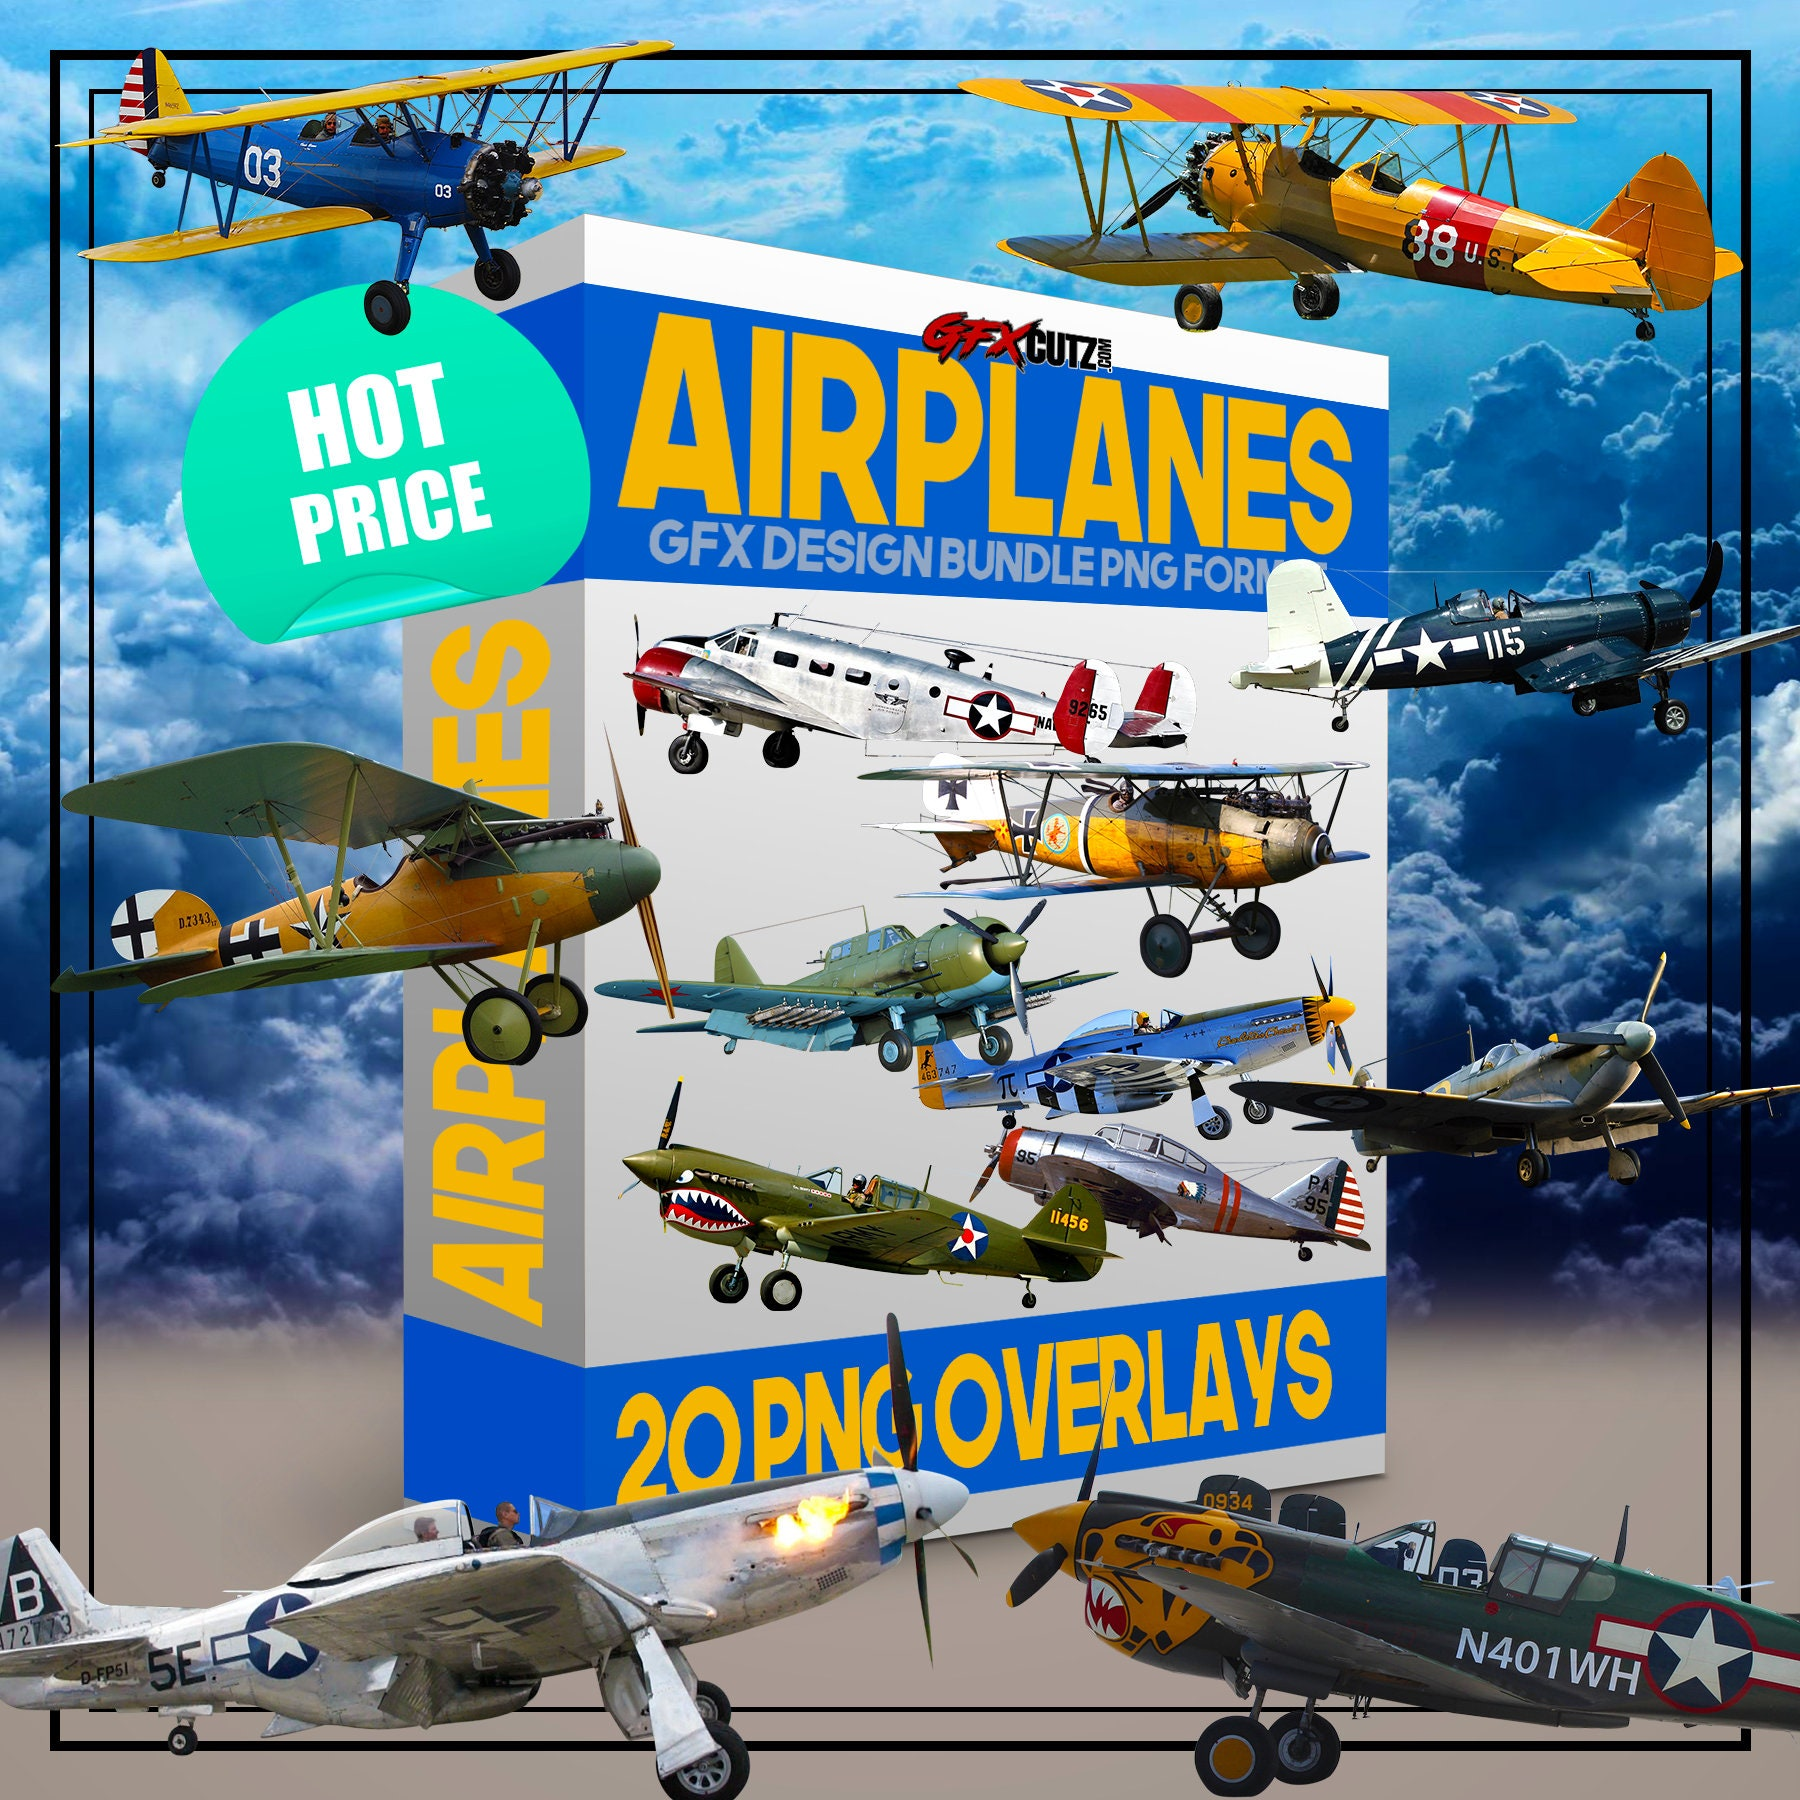 Airplanes 1 Photoshop Overlay Bundle In PNG Format (Jet